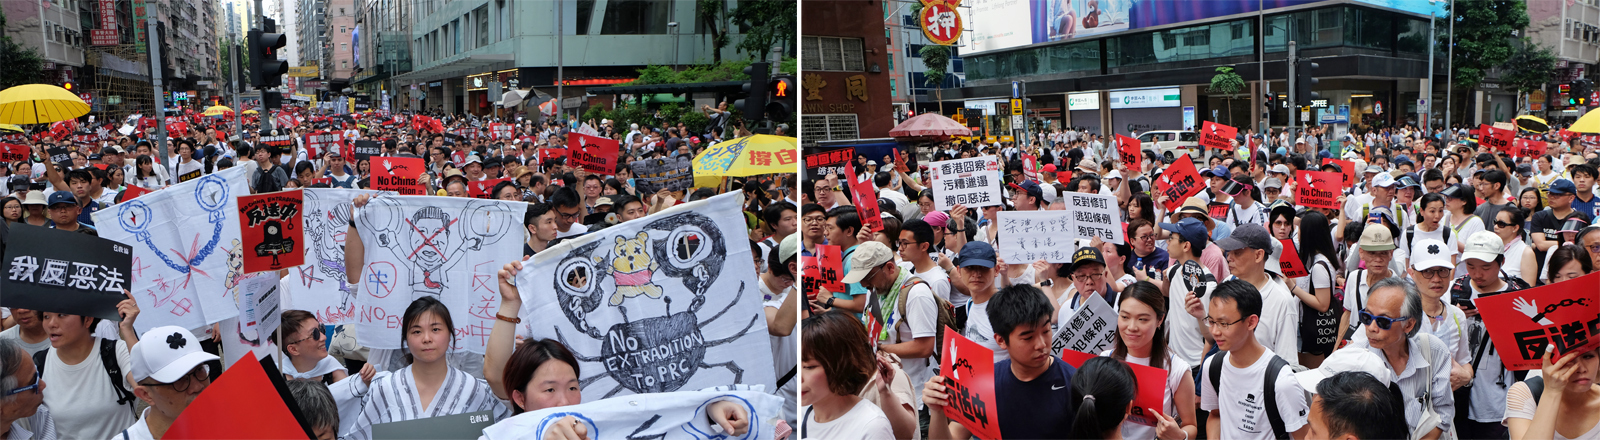 Protestierende in Hongkong am 9. Juni 2019